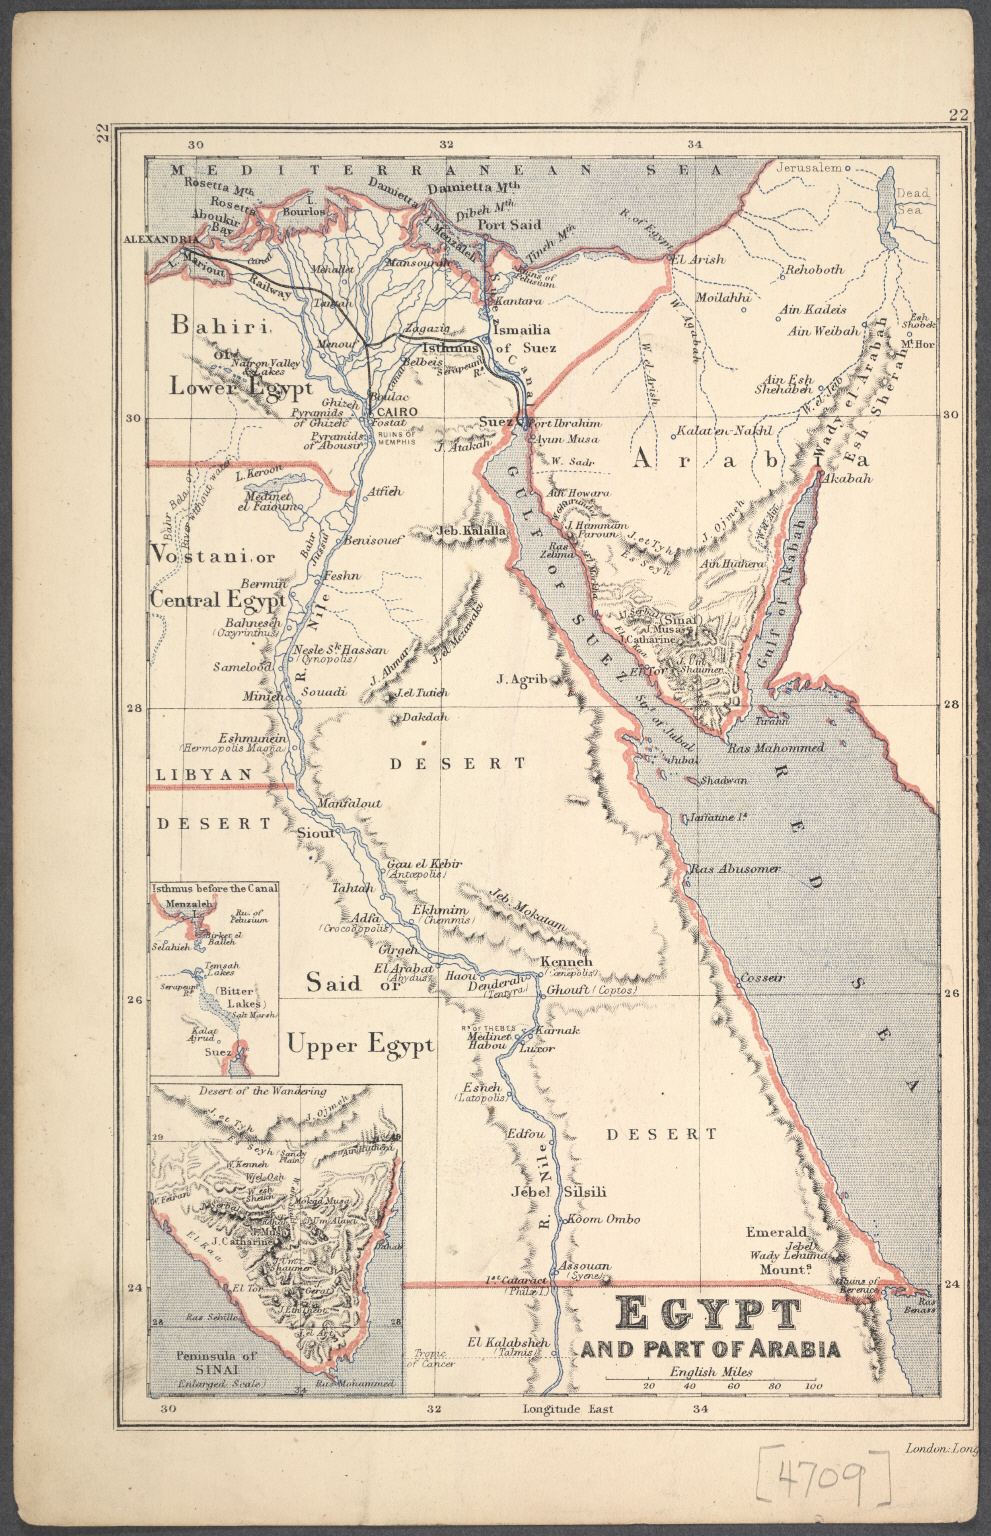 Egypt and Part of Arabia.